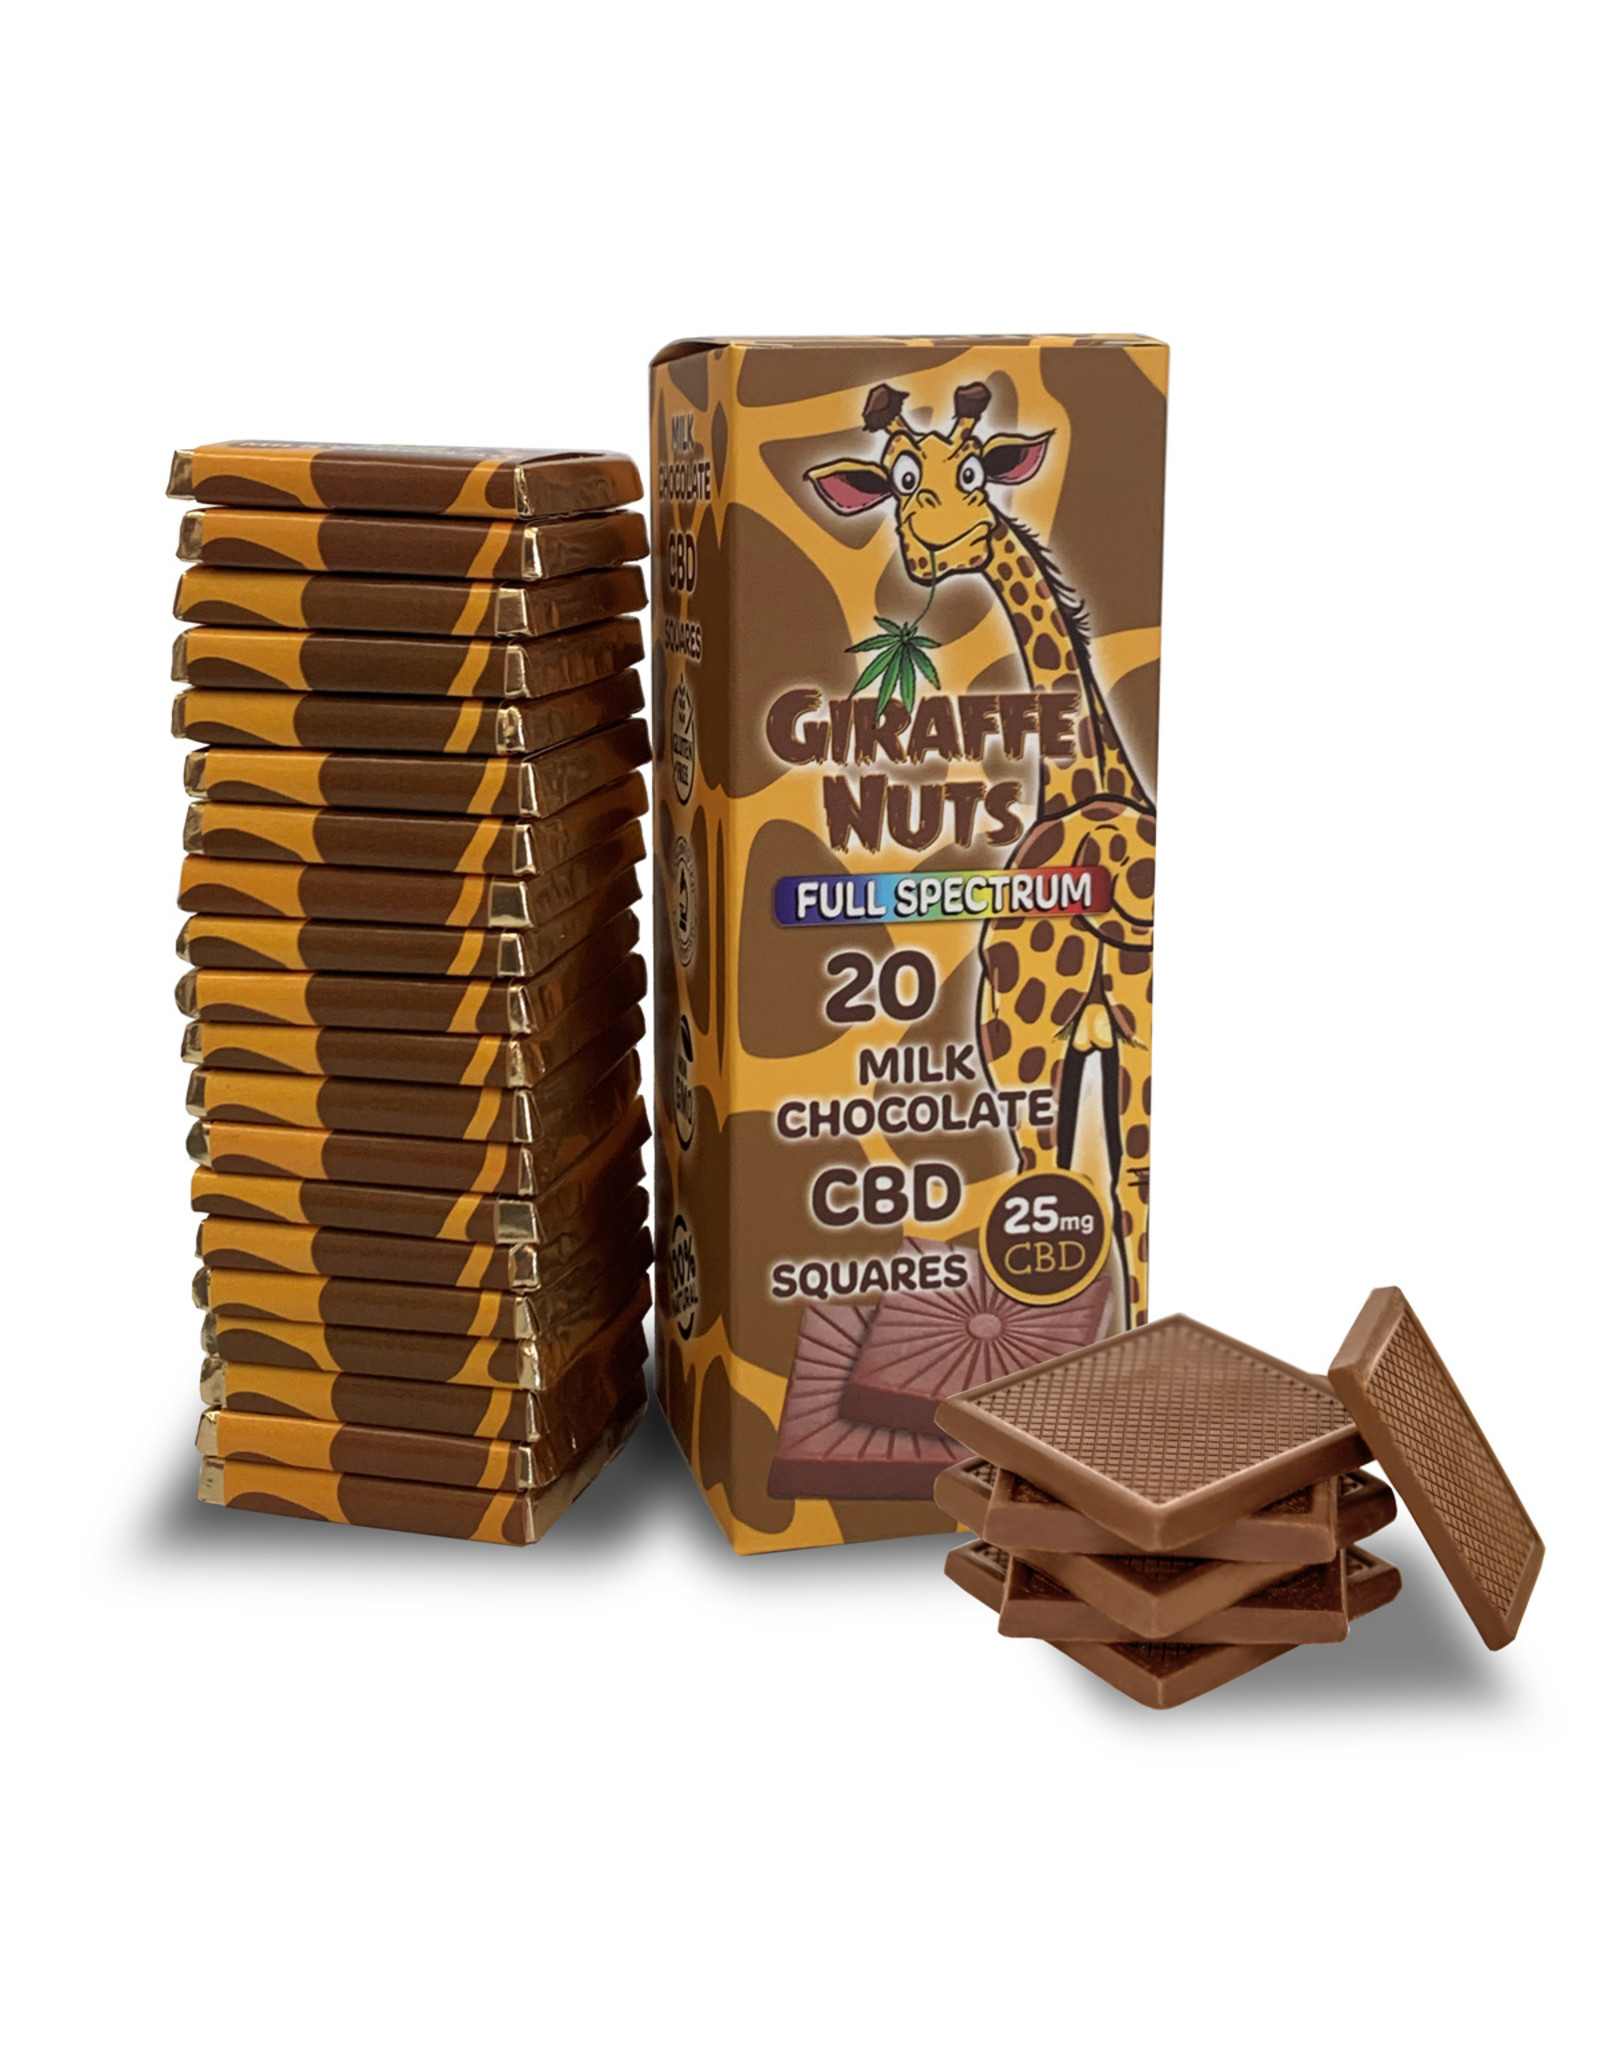 Giraffe Nuts Giraffe Nuts 25mg Milk Chocolate Square